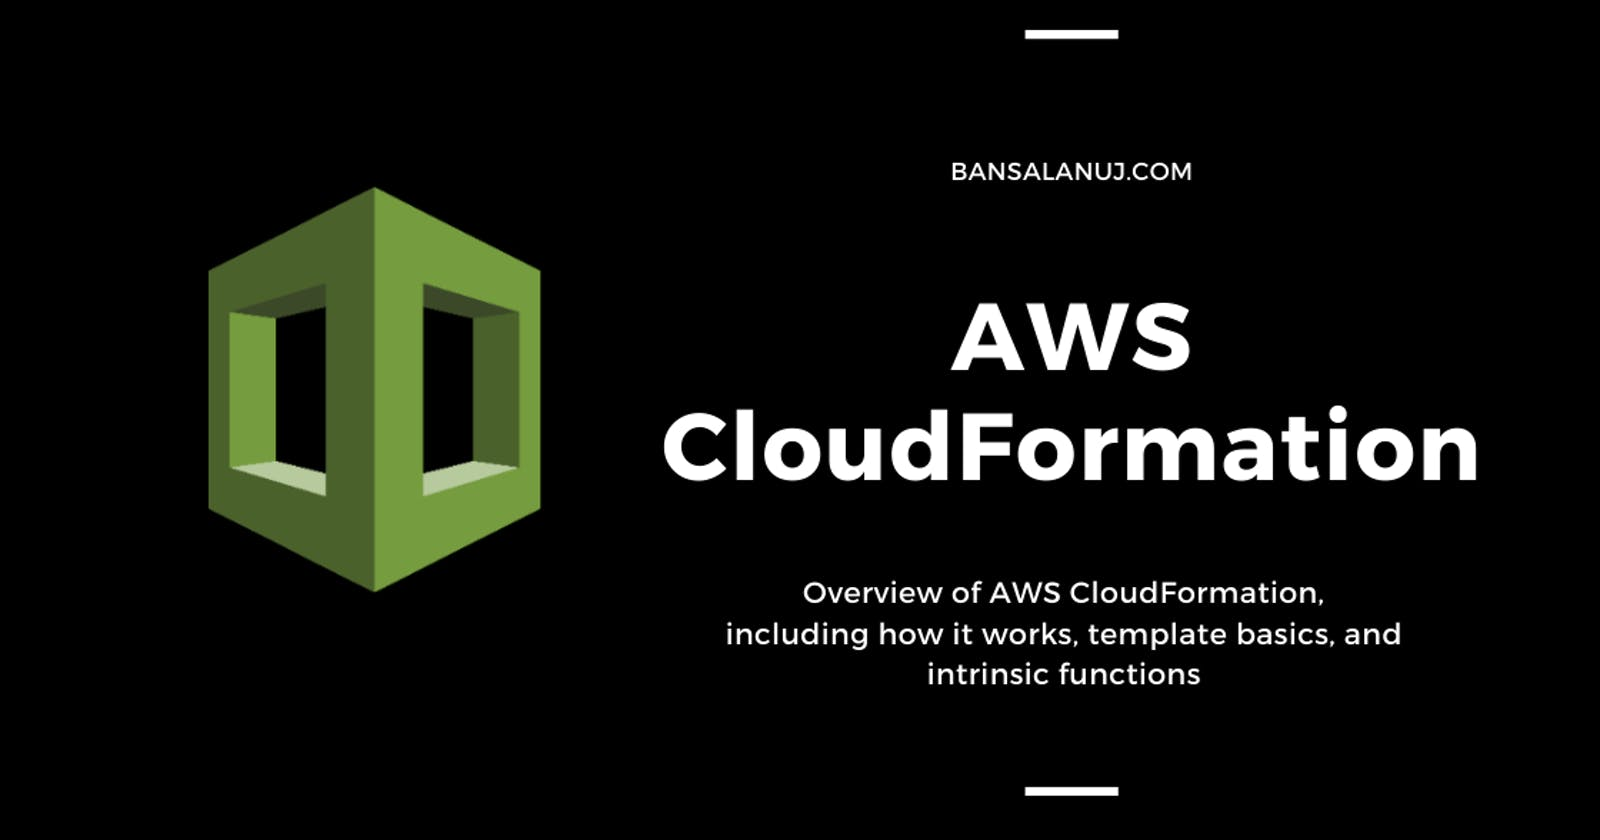 Introduction to AWS CloudFormation